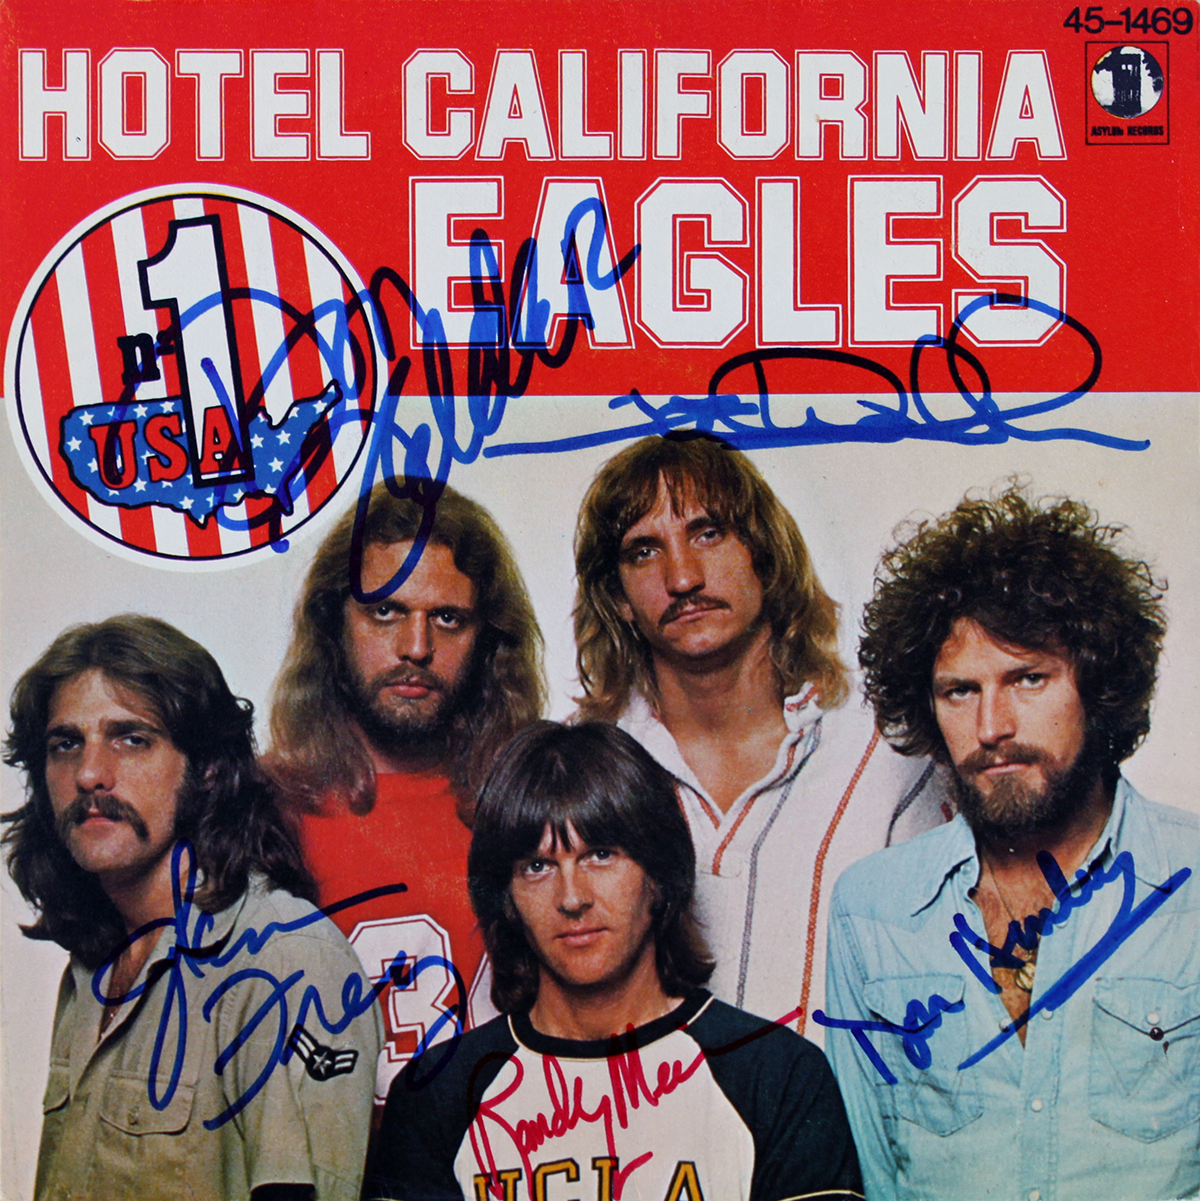 Eagles Spanish 45rpm sleeve - Hotel California